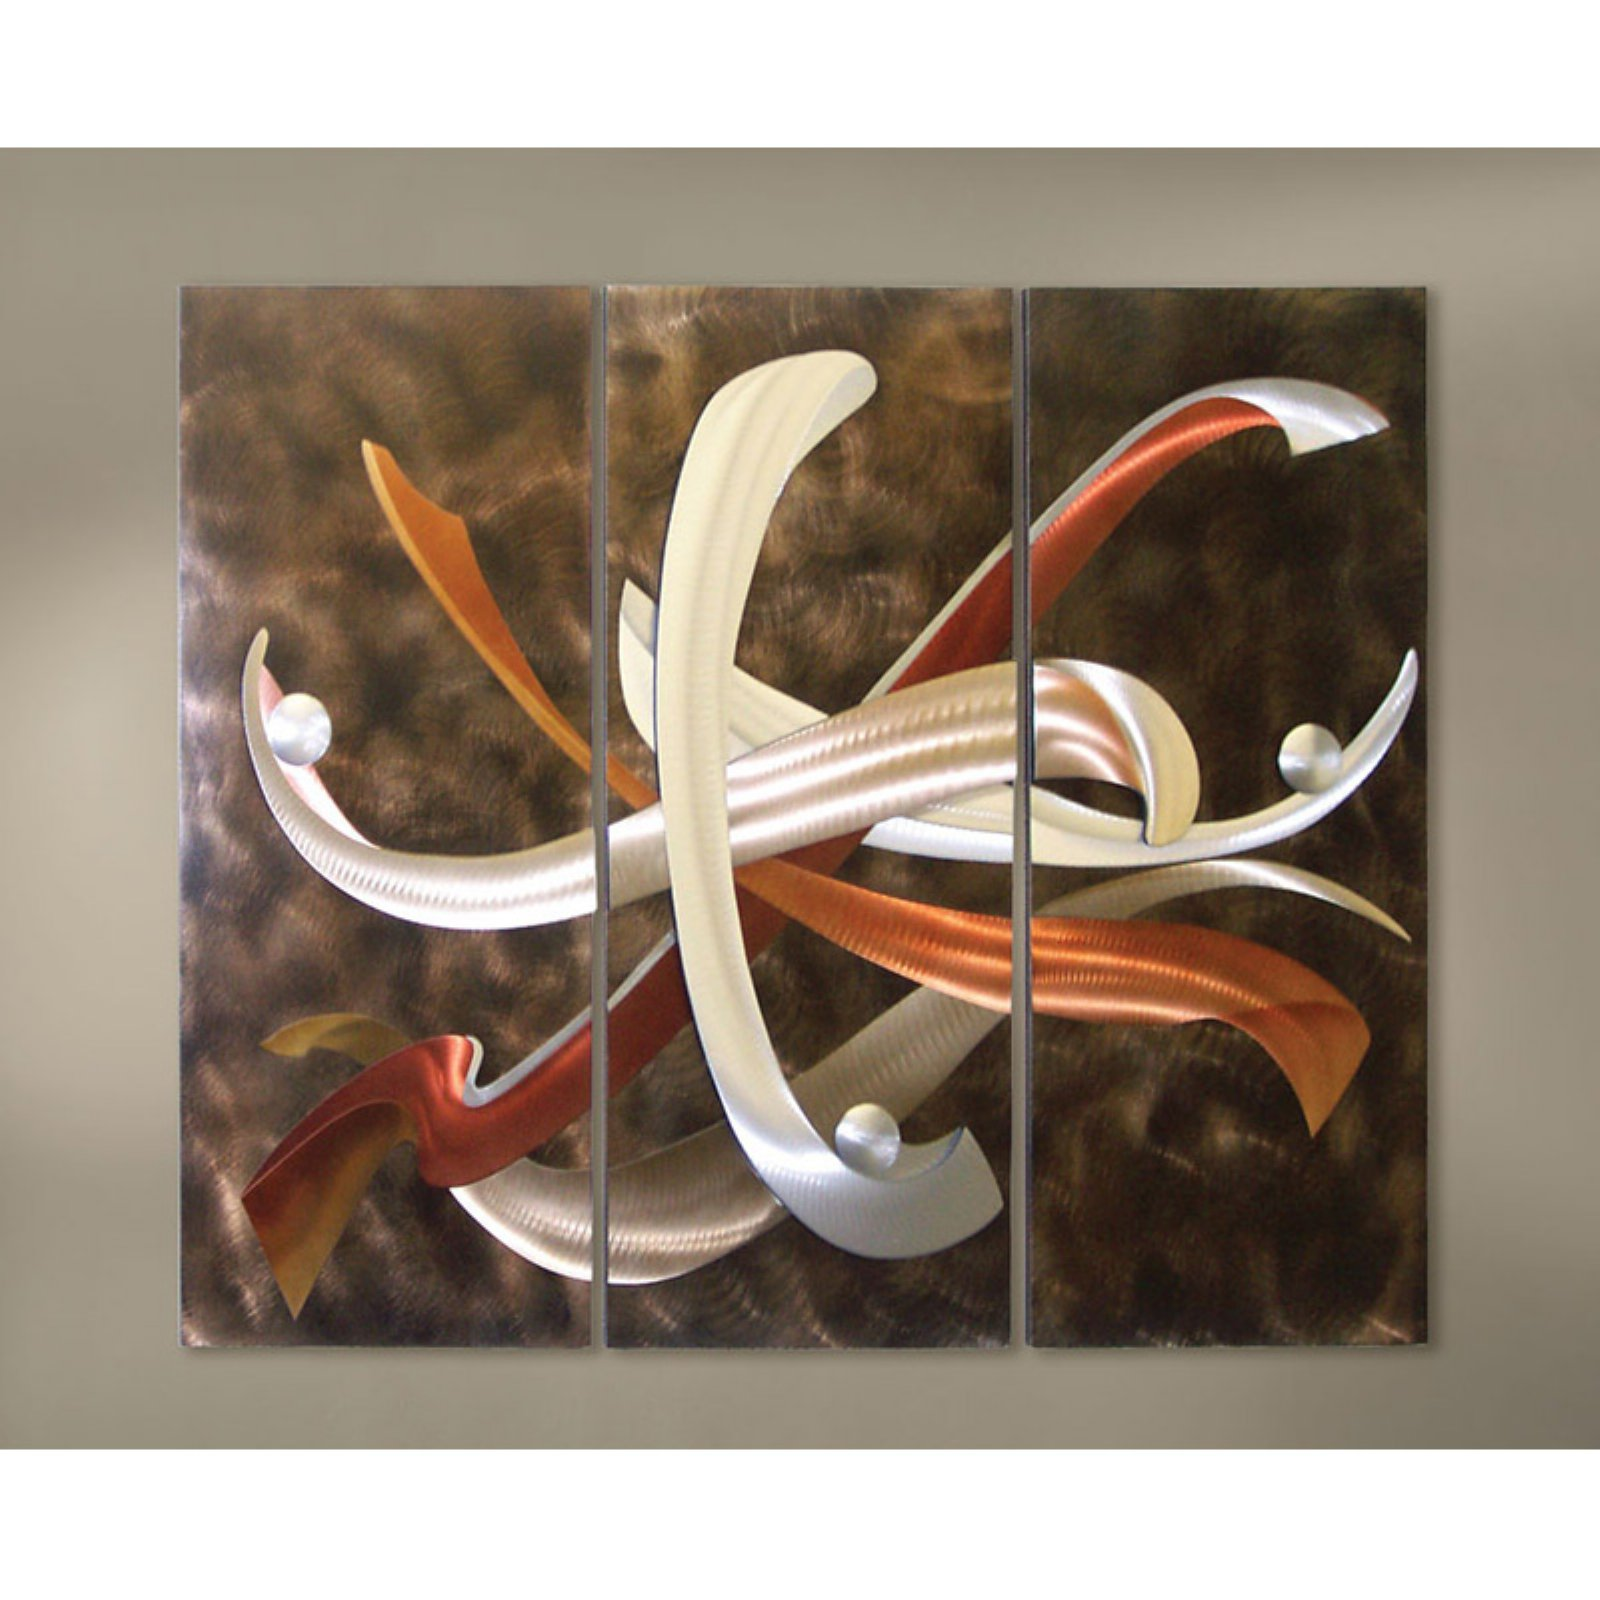 NOVA Super NOVA Metal Wall Art - 54W x 42H in.